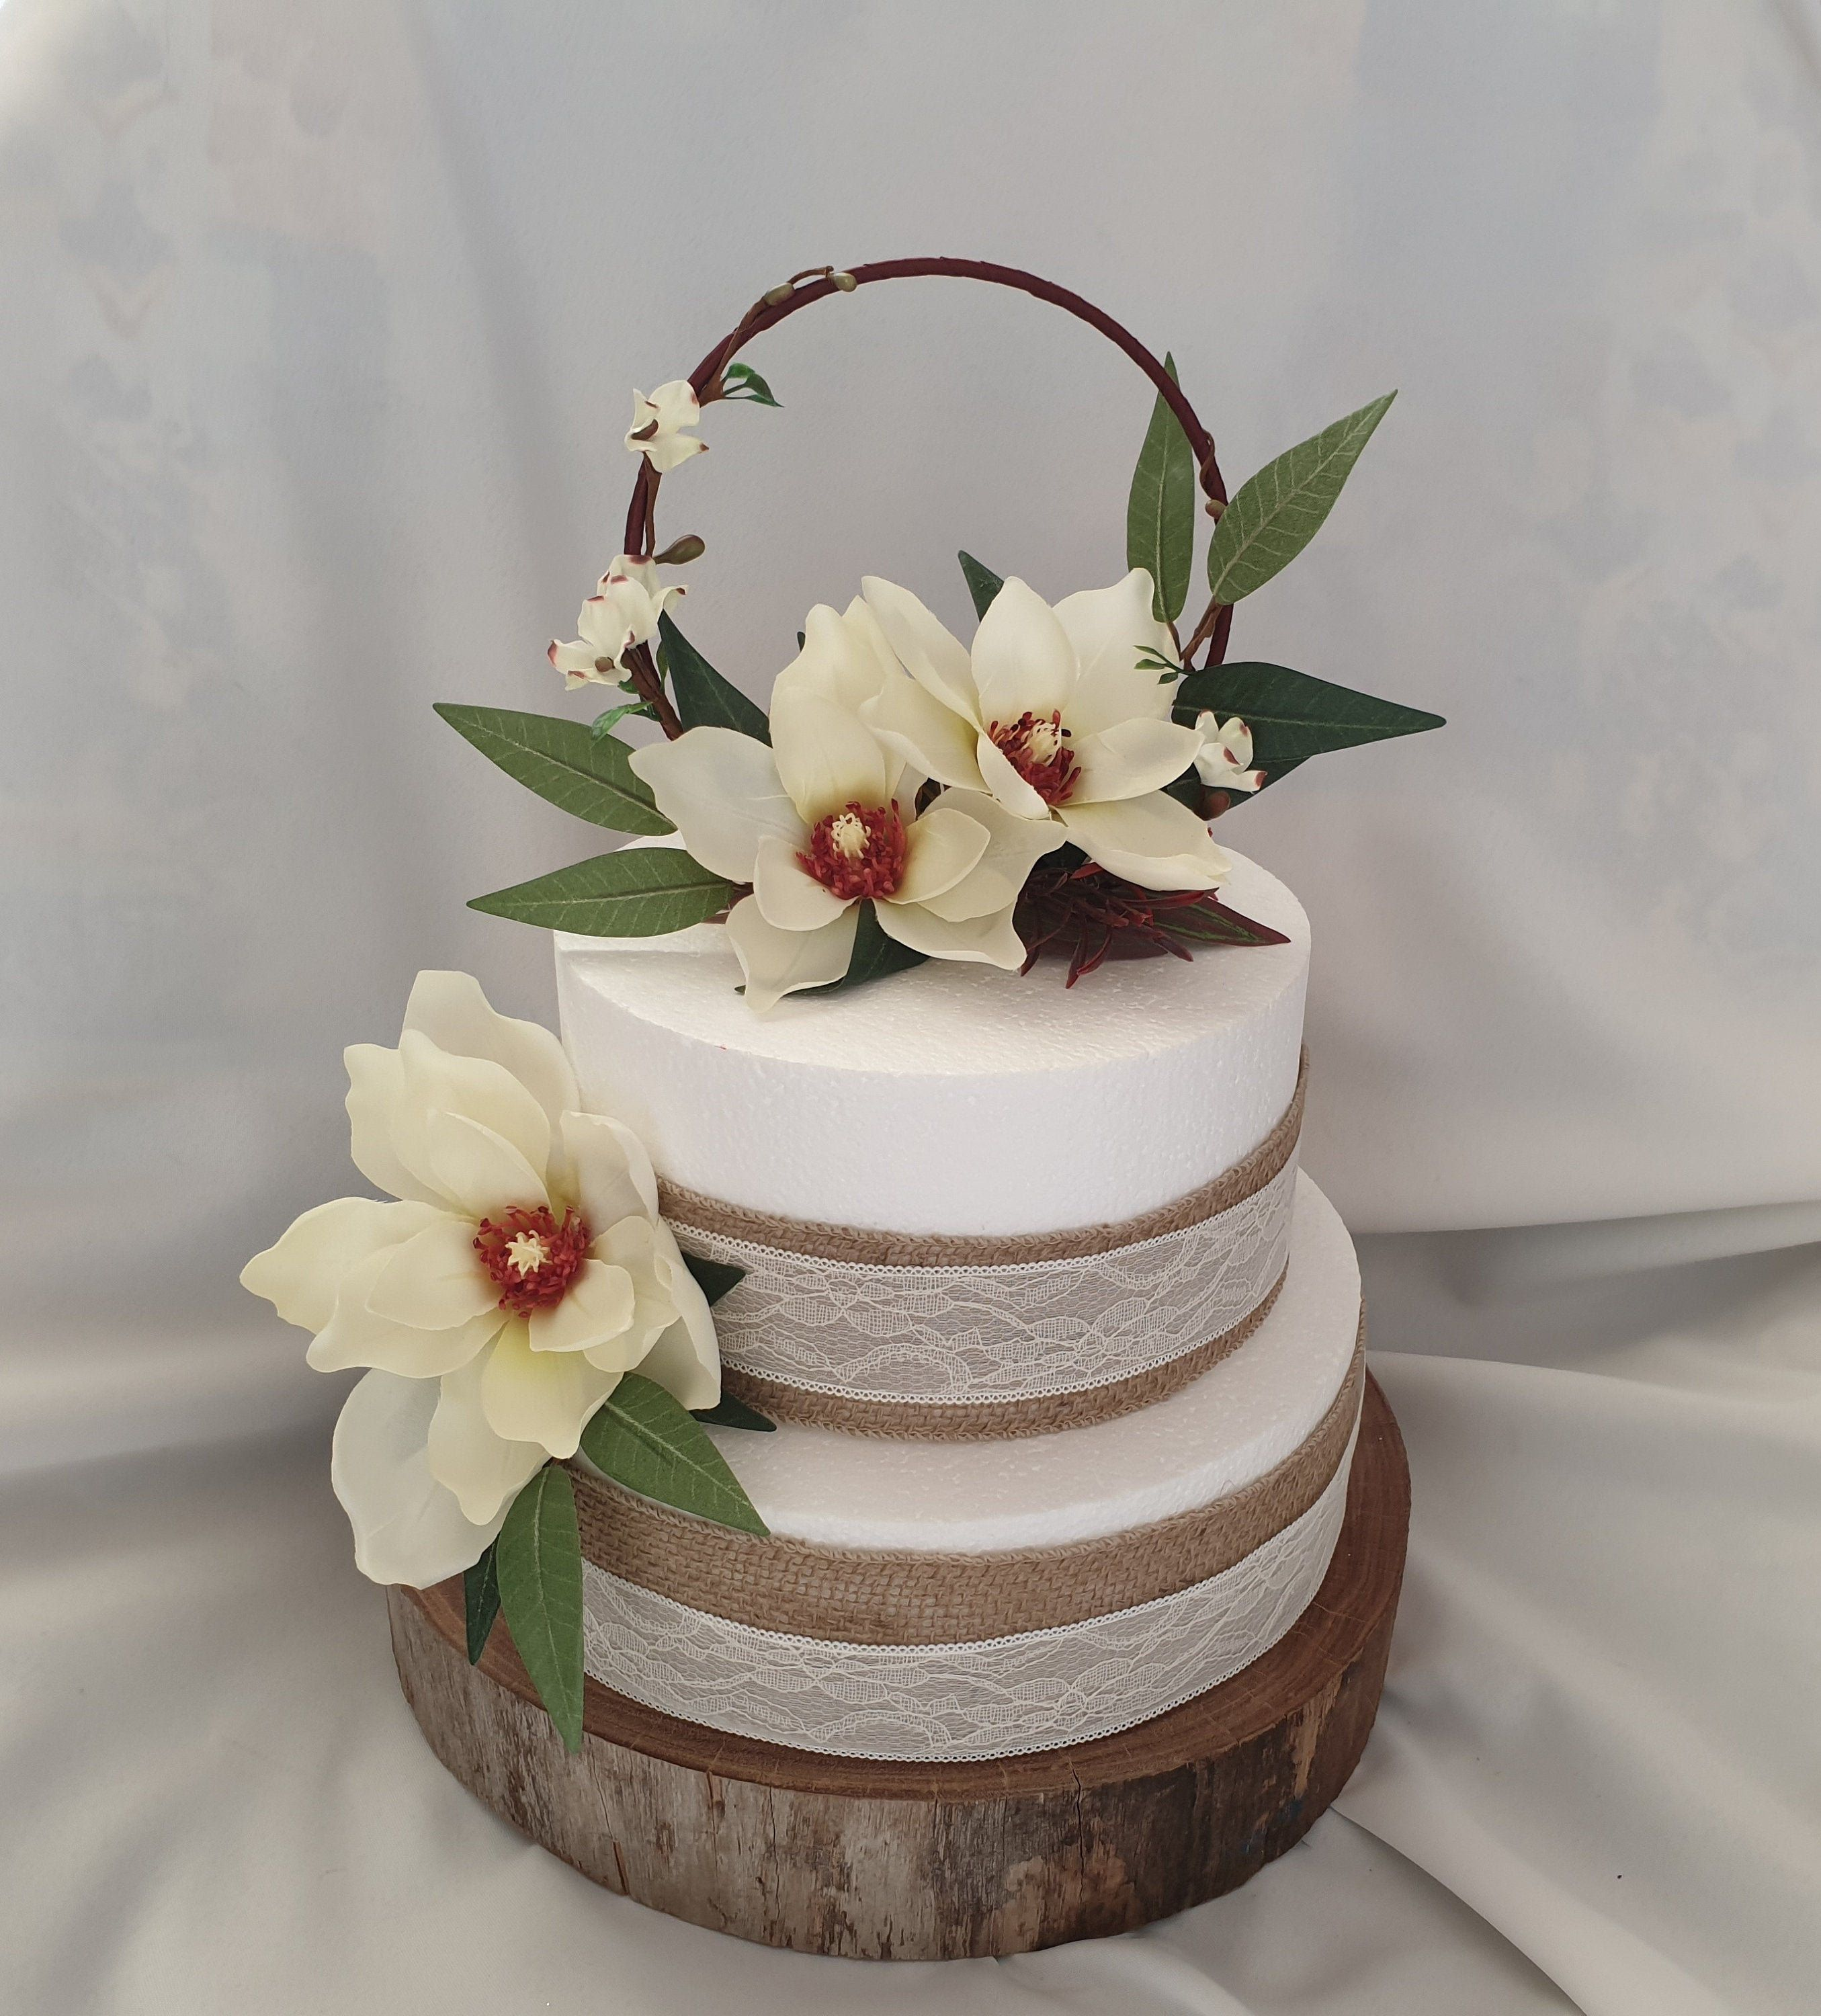 Wedding Hoop Cake Topper Silk Flower Cream Magnolia Rustic Cake Toppers Tropical Cake Topper Rustic Cake Toppers